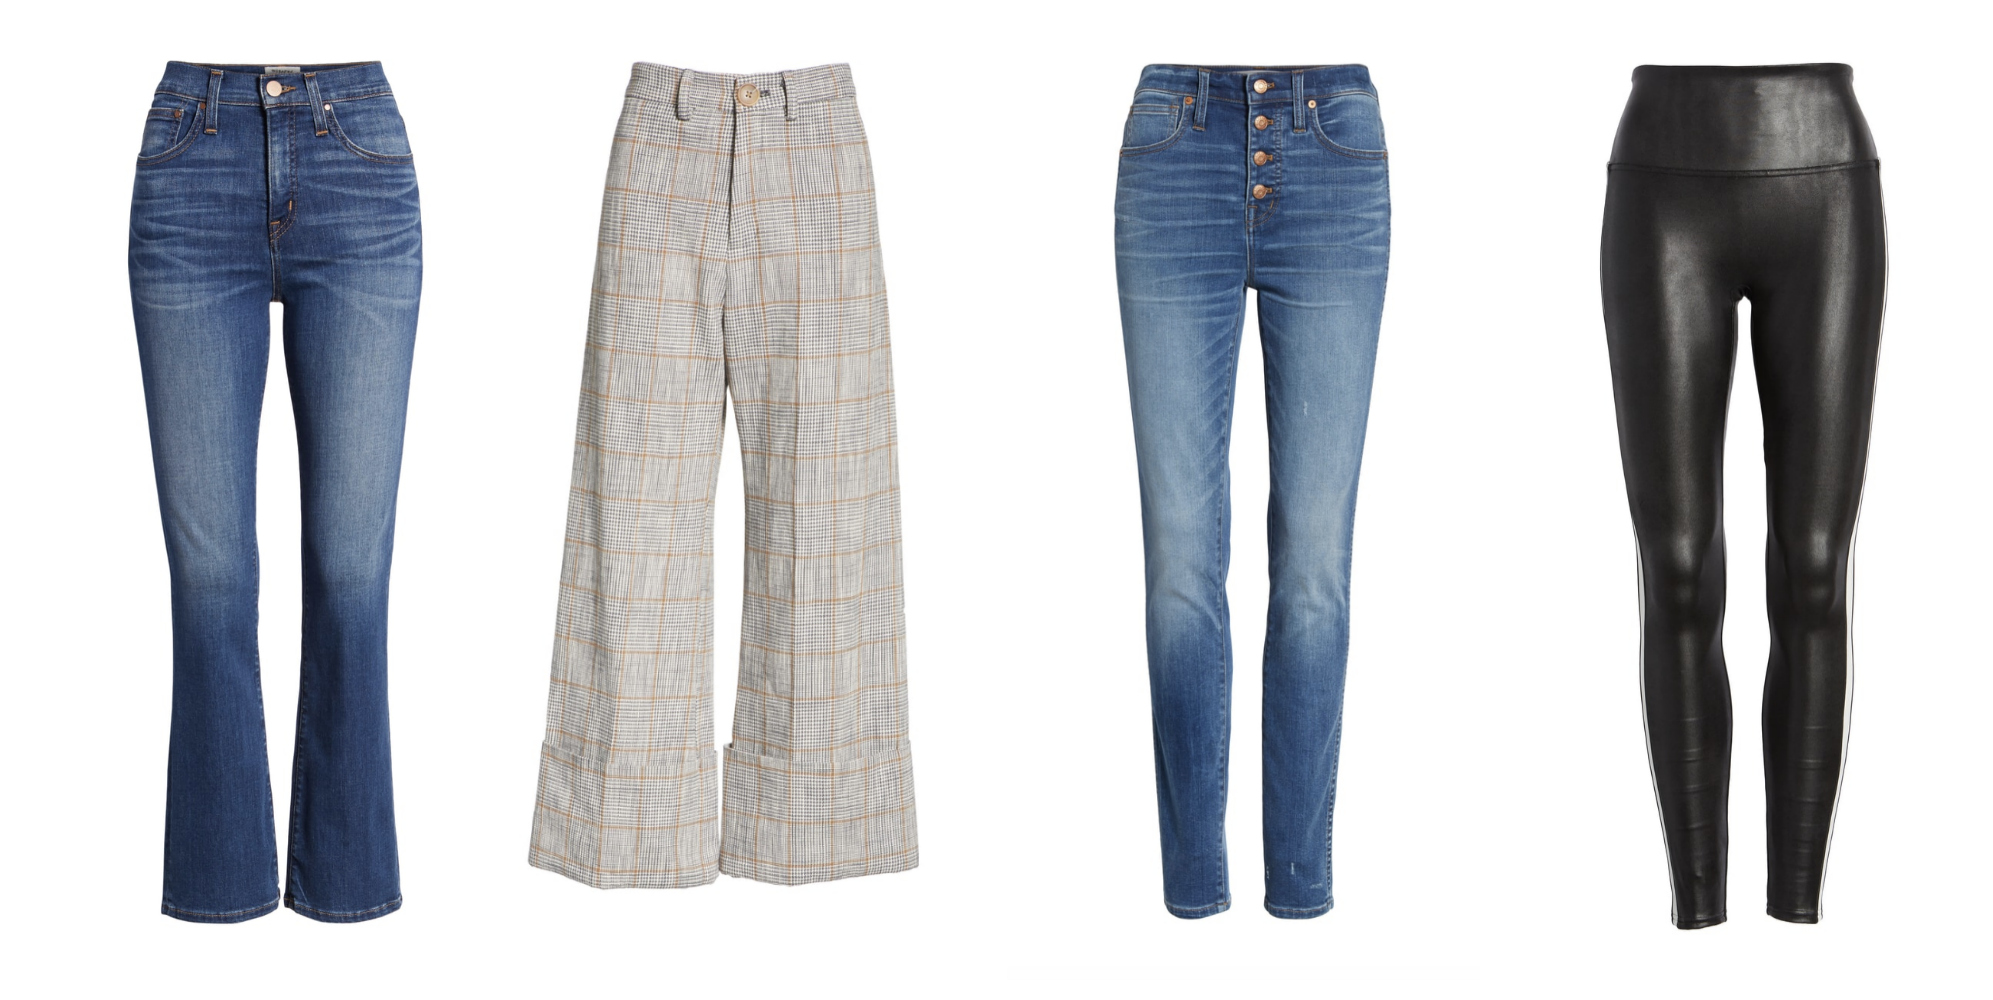 nordstrom anniversary sale picks pants 2018